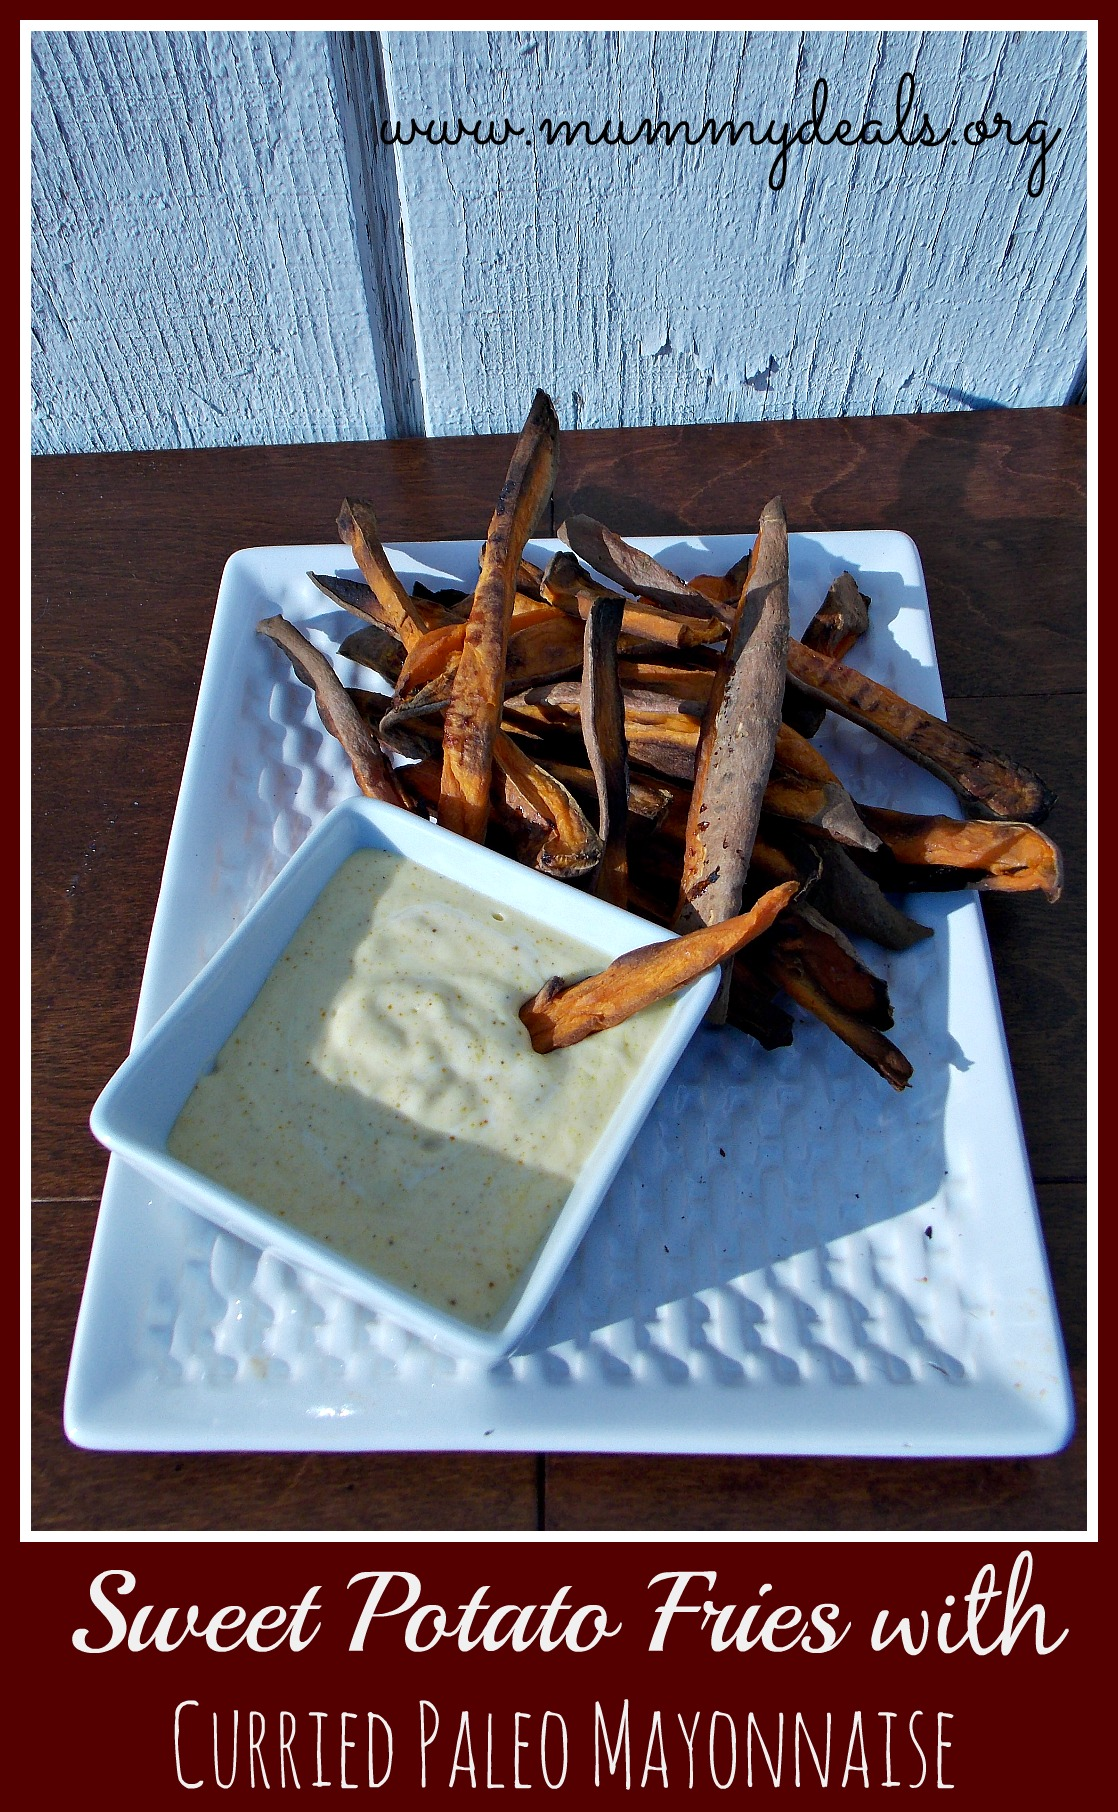 Sweet Potato Fries 5